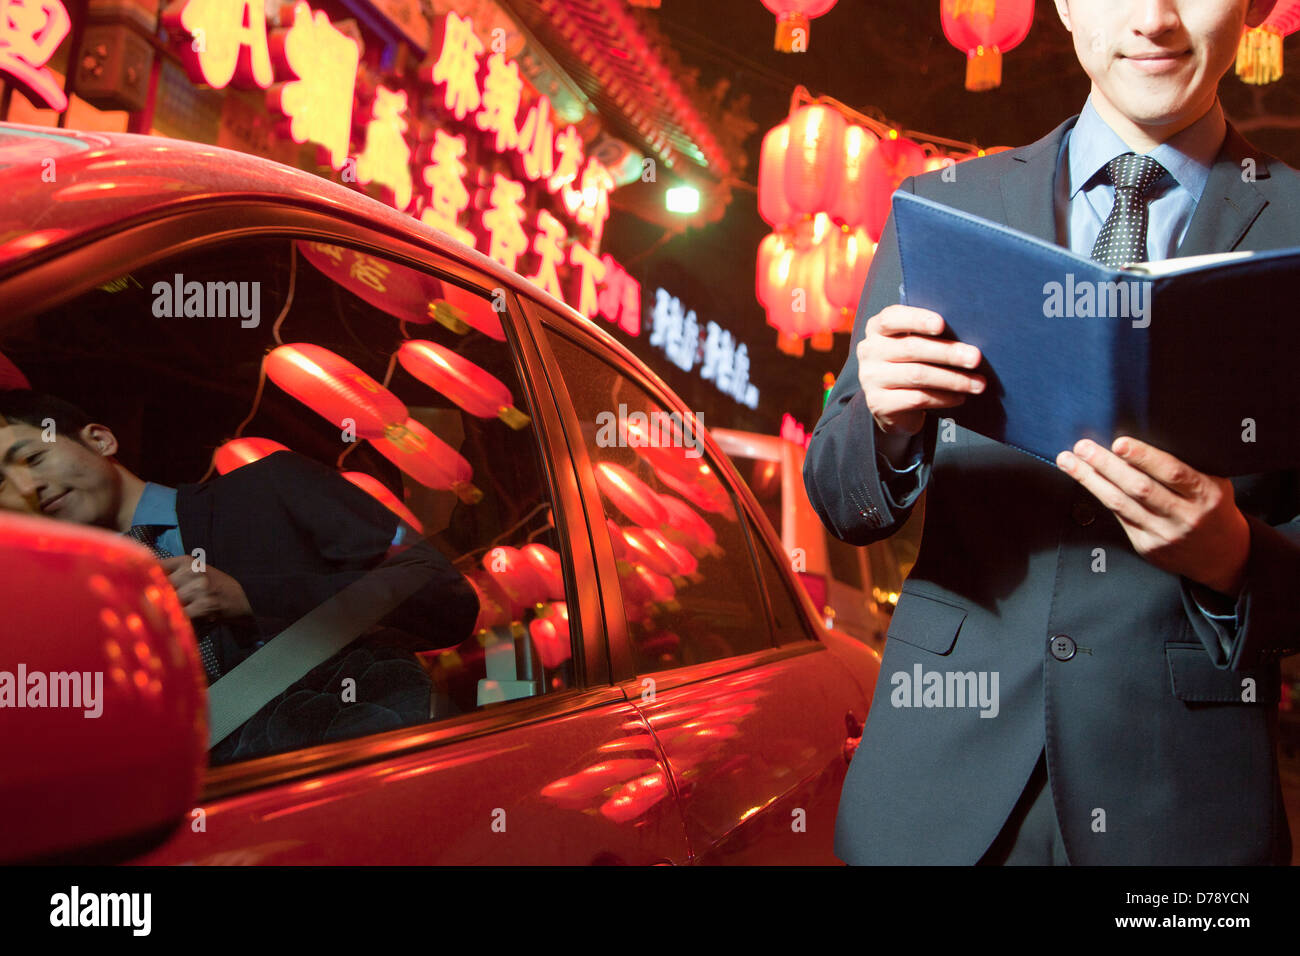 Businessman standing next to his car at night, Red lanterns on the background Stock Photo